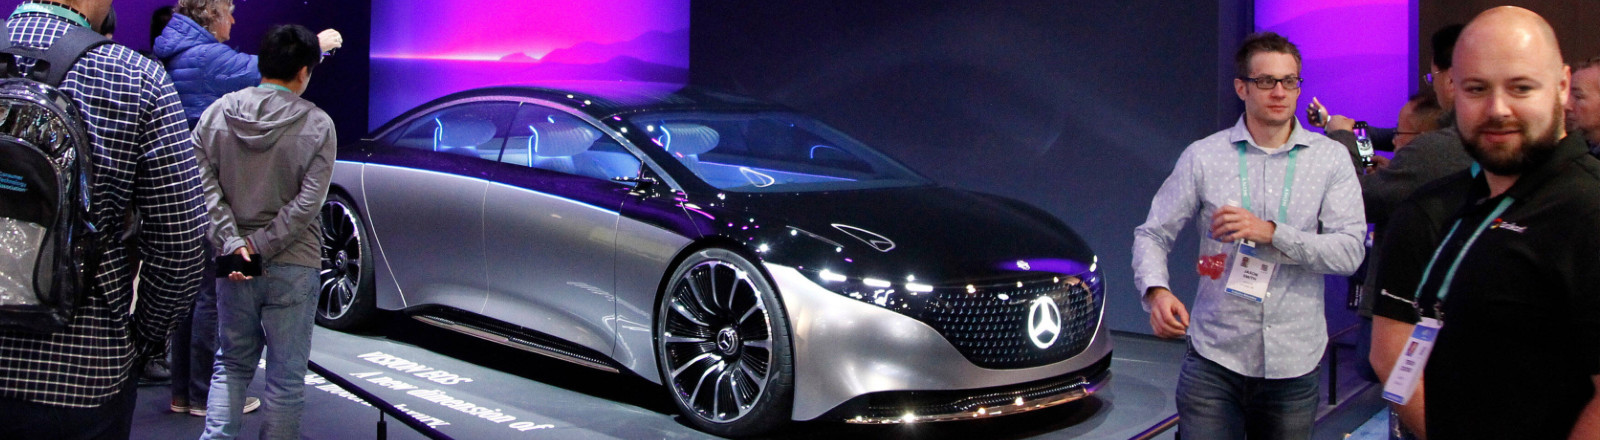 Attendees take a closer look at the Mercedes-Benz Vision EQS concept vehicle on display during the 2020 International CES, at the Las Vegas Convention Center in Las Vegas, Nevada.